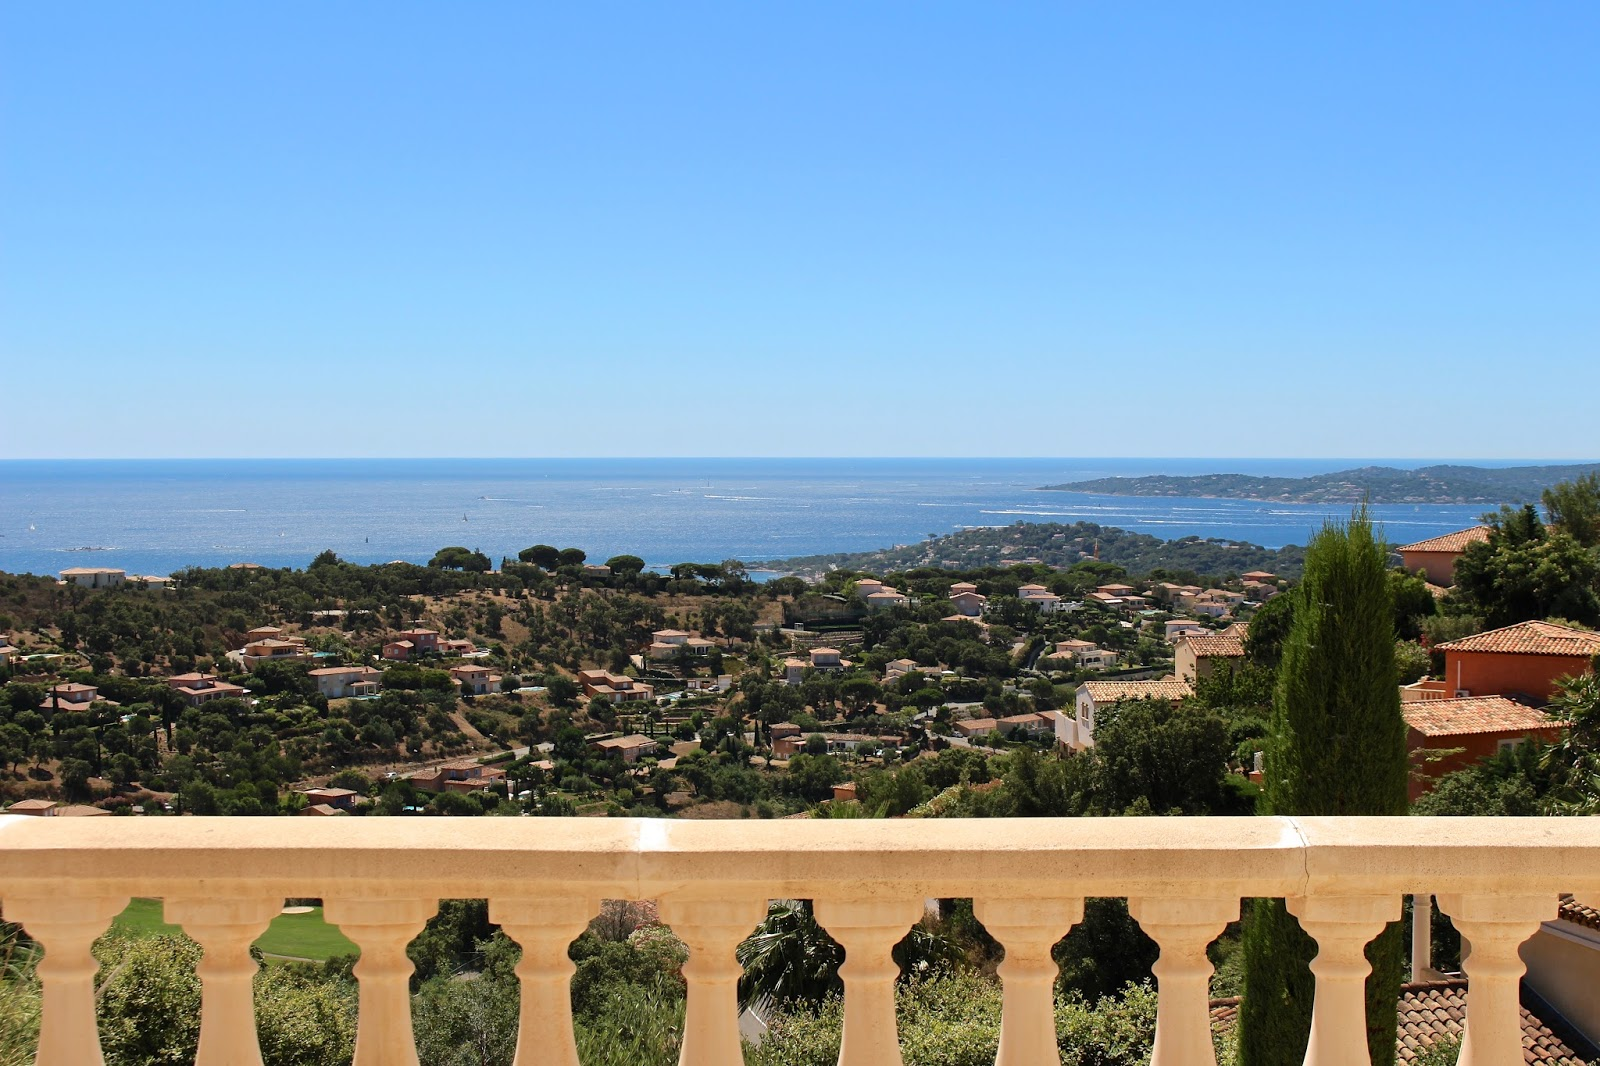 Balcony view of Sainte Maxime in Côte d'Azur